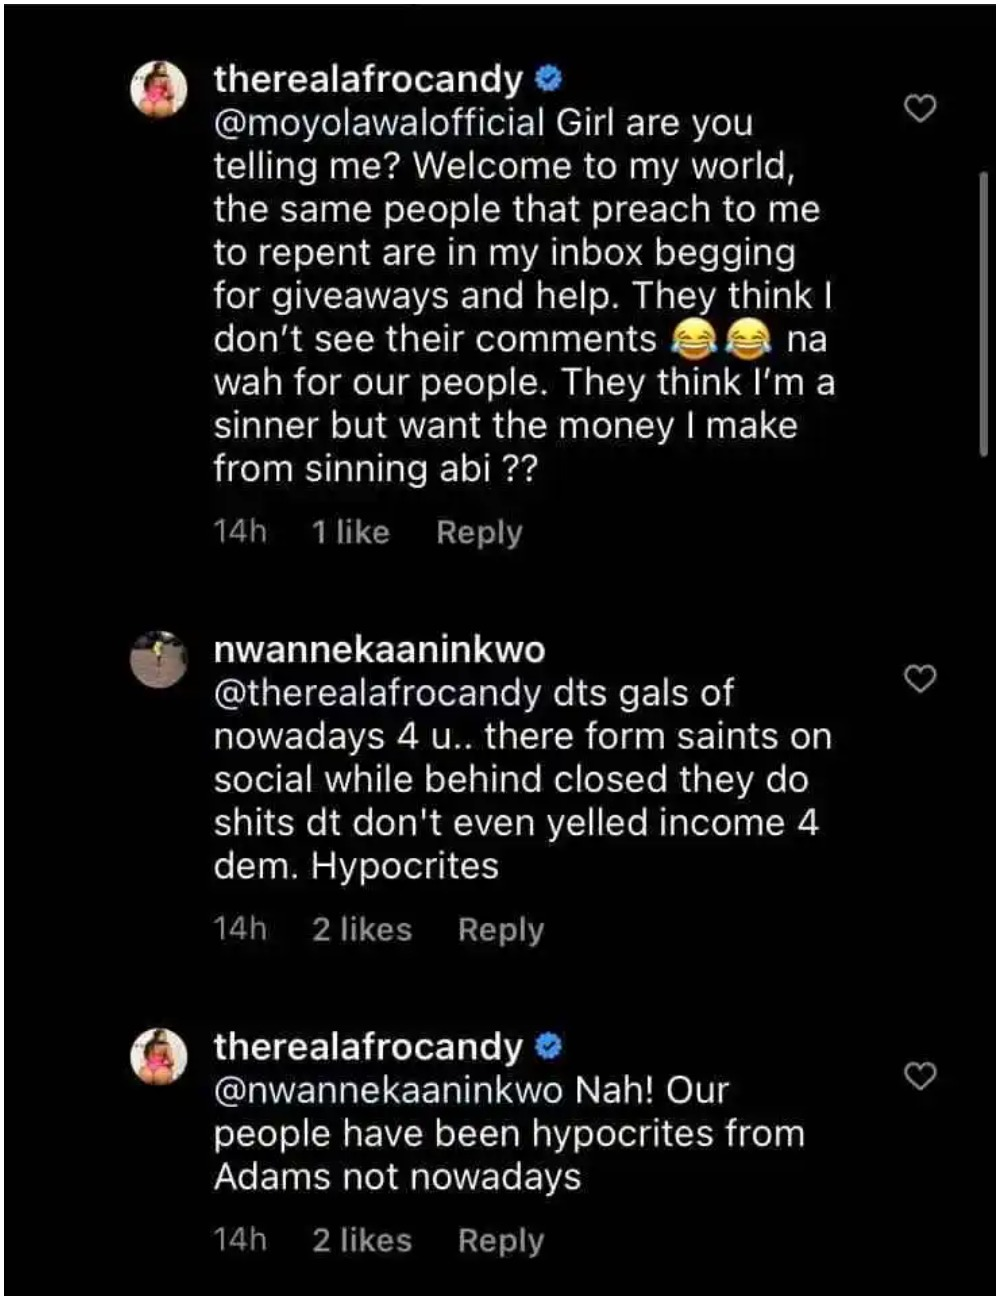 Those Preaching Repentance To Me Are In My Inbox Begging For Money – Nigerian Pοrnstar, Afrocandy 3